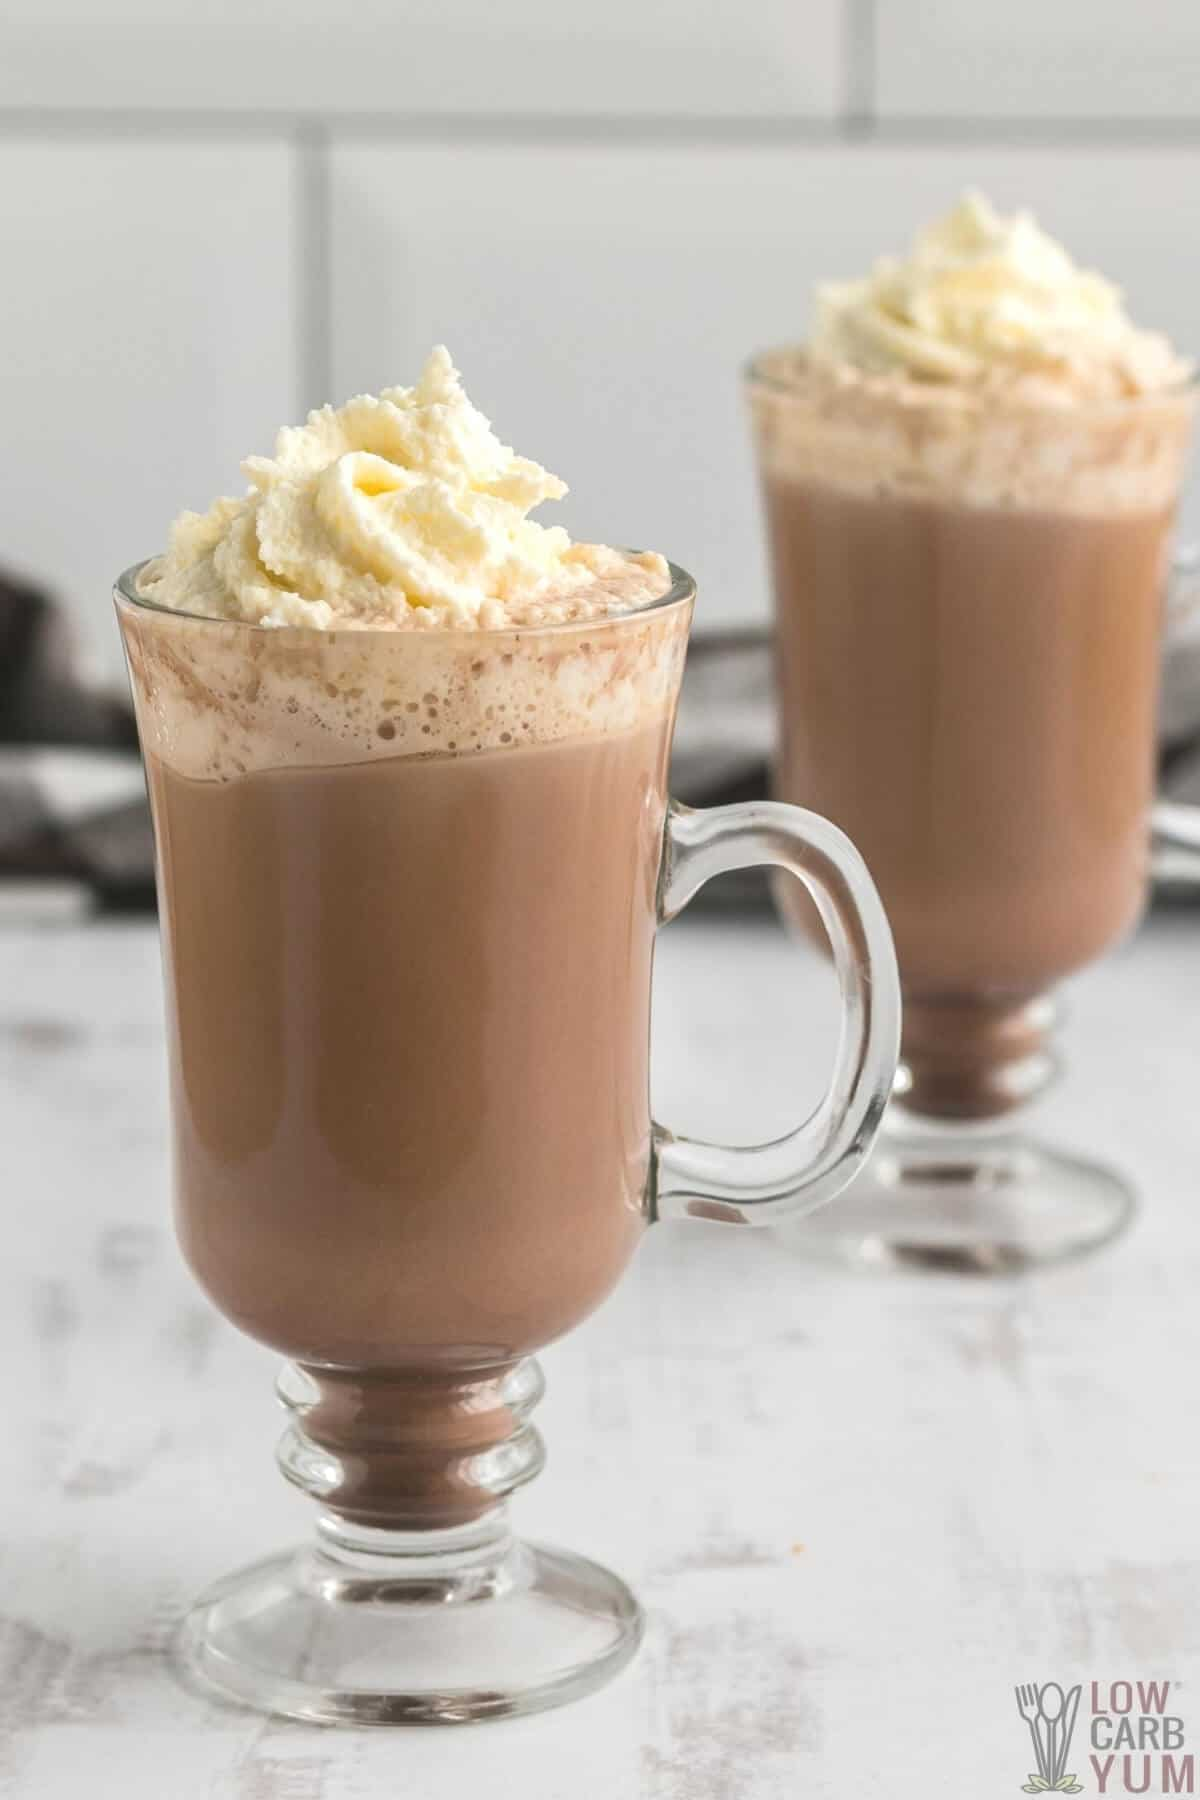 two glass cups of sugar free low carb keto hot chocolate topped with whipped cream